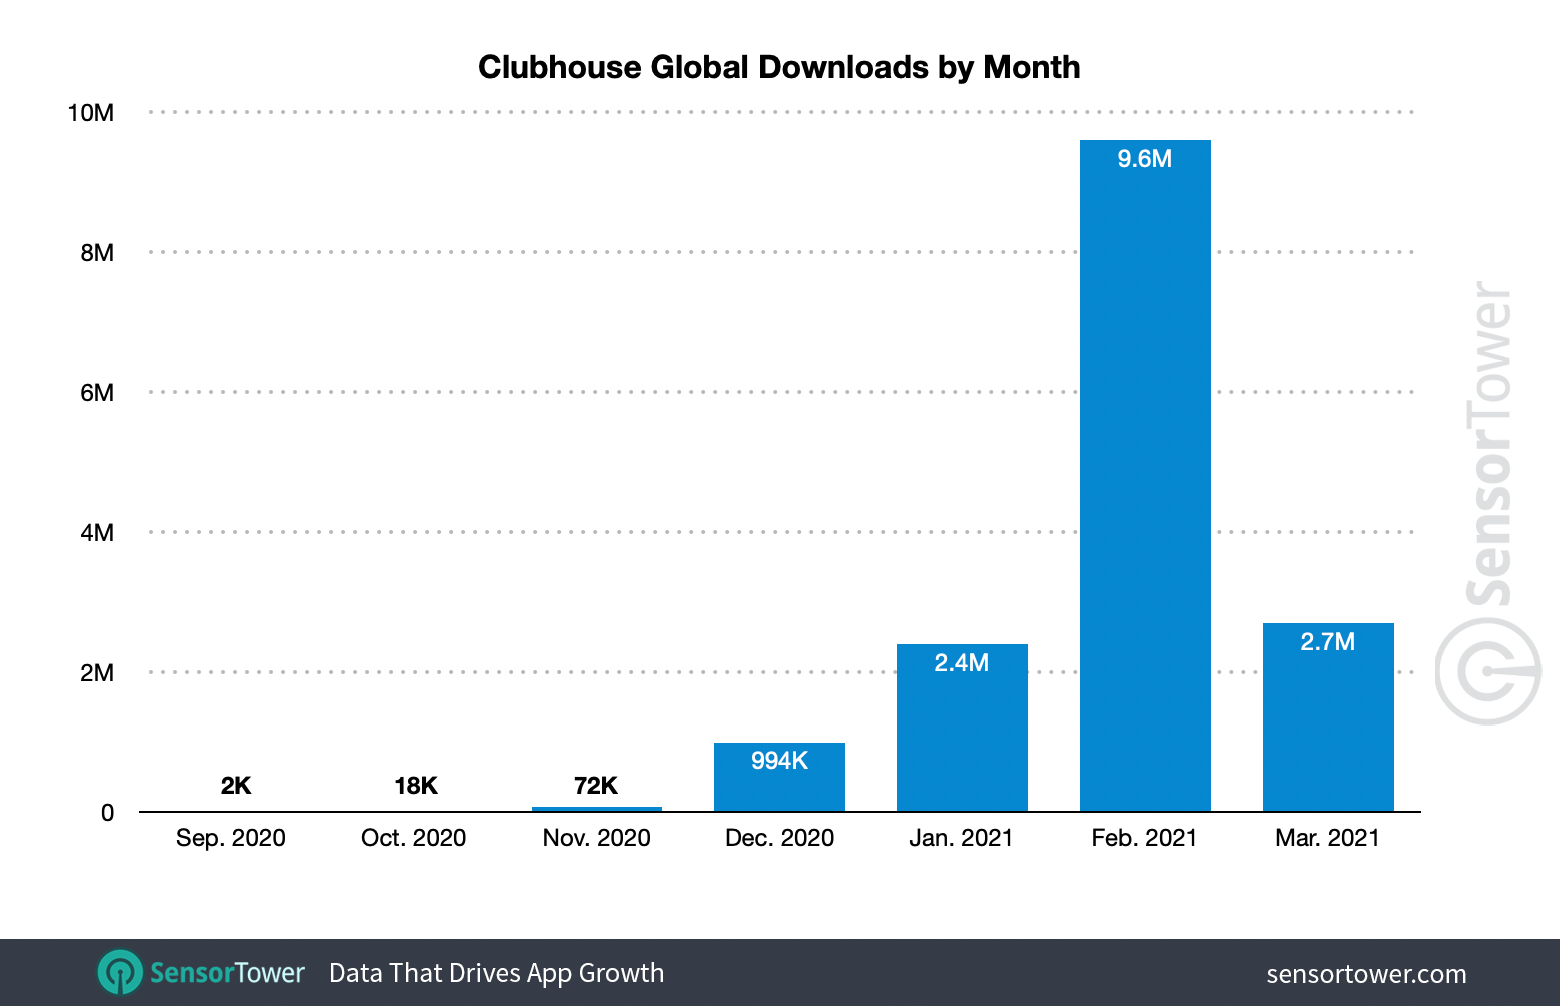 Monthly Clubhouse Global Installations from September 2020.